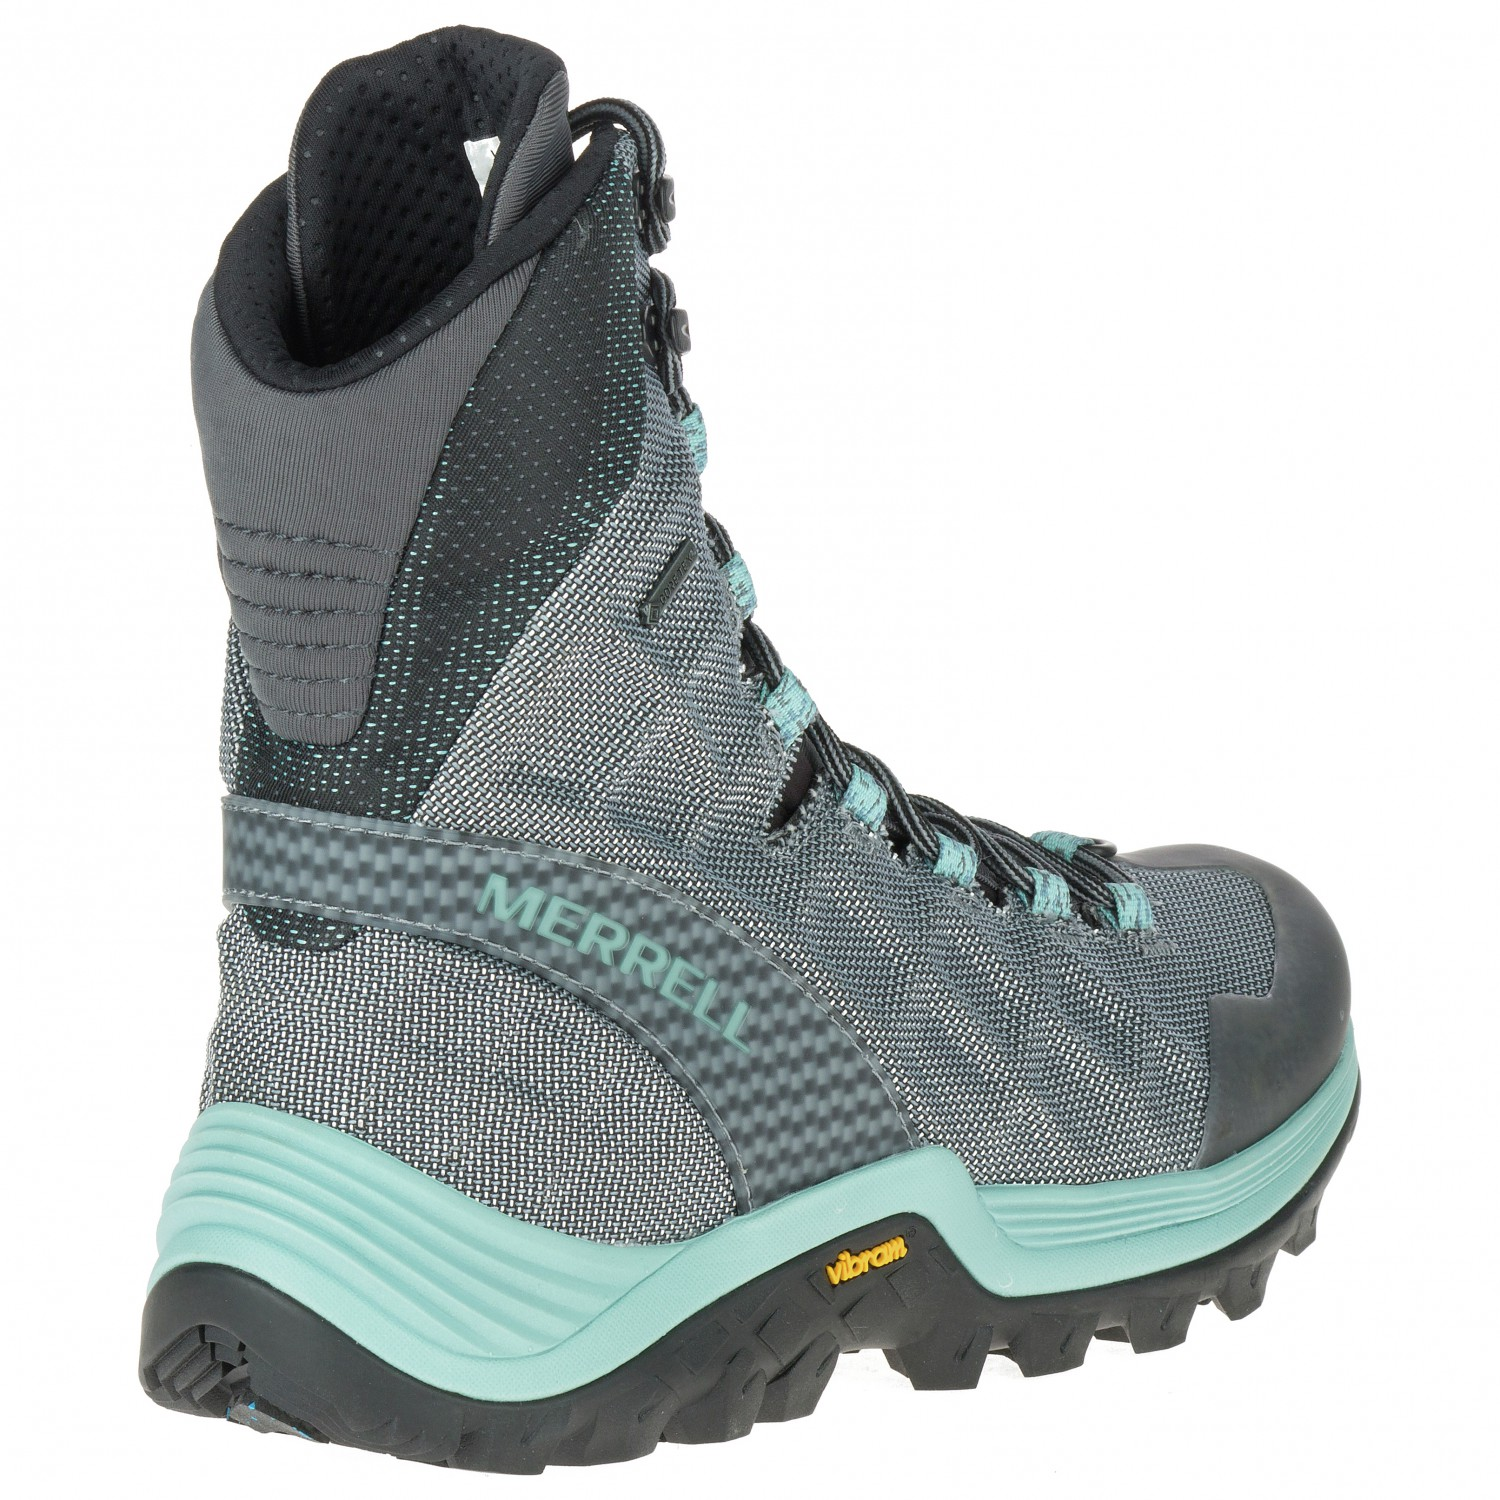 8fc74826 Merrell Thermo Rogue 8'' GTX - Winter Boots Women's   Buy online ...